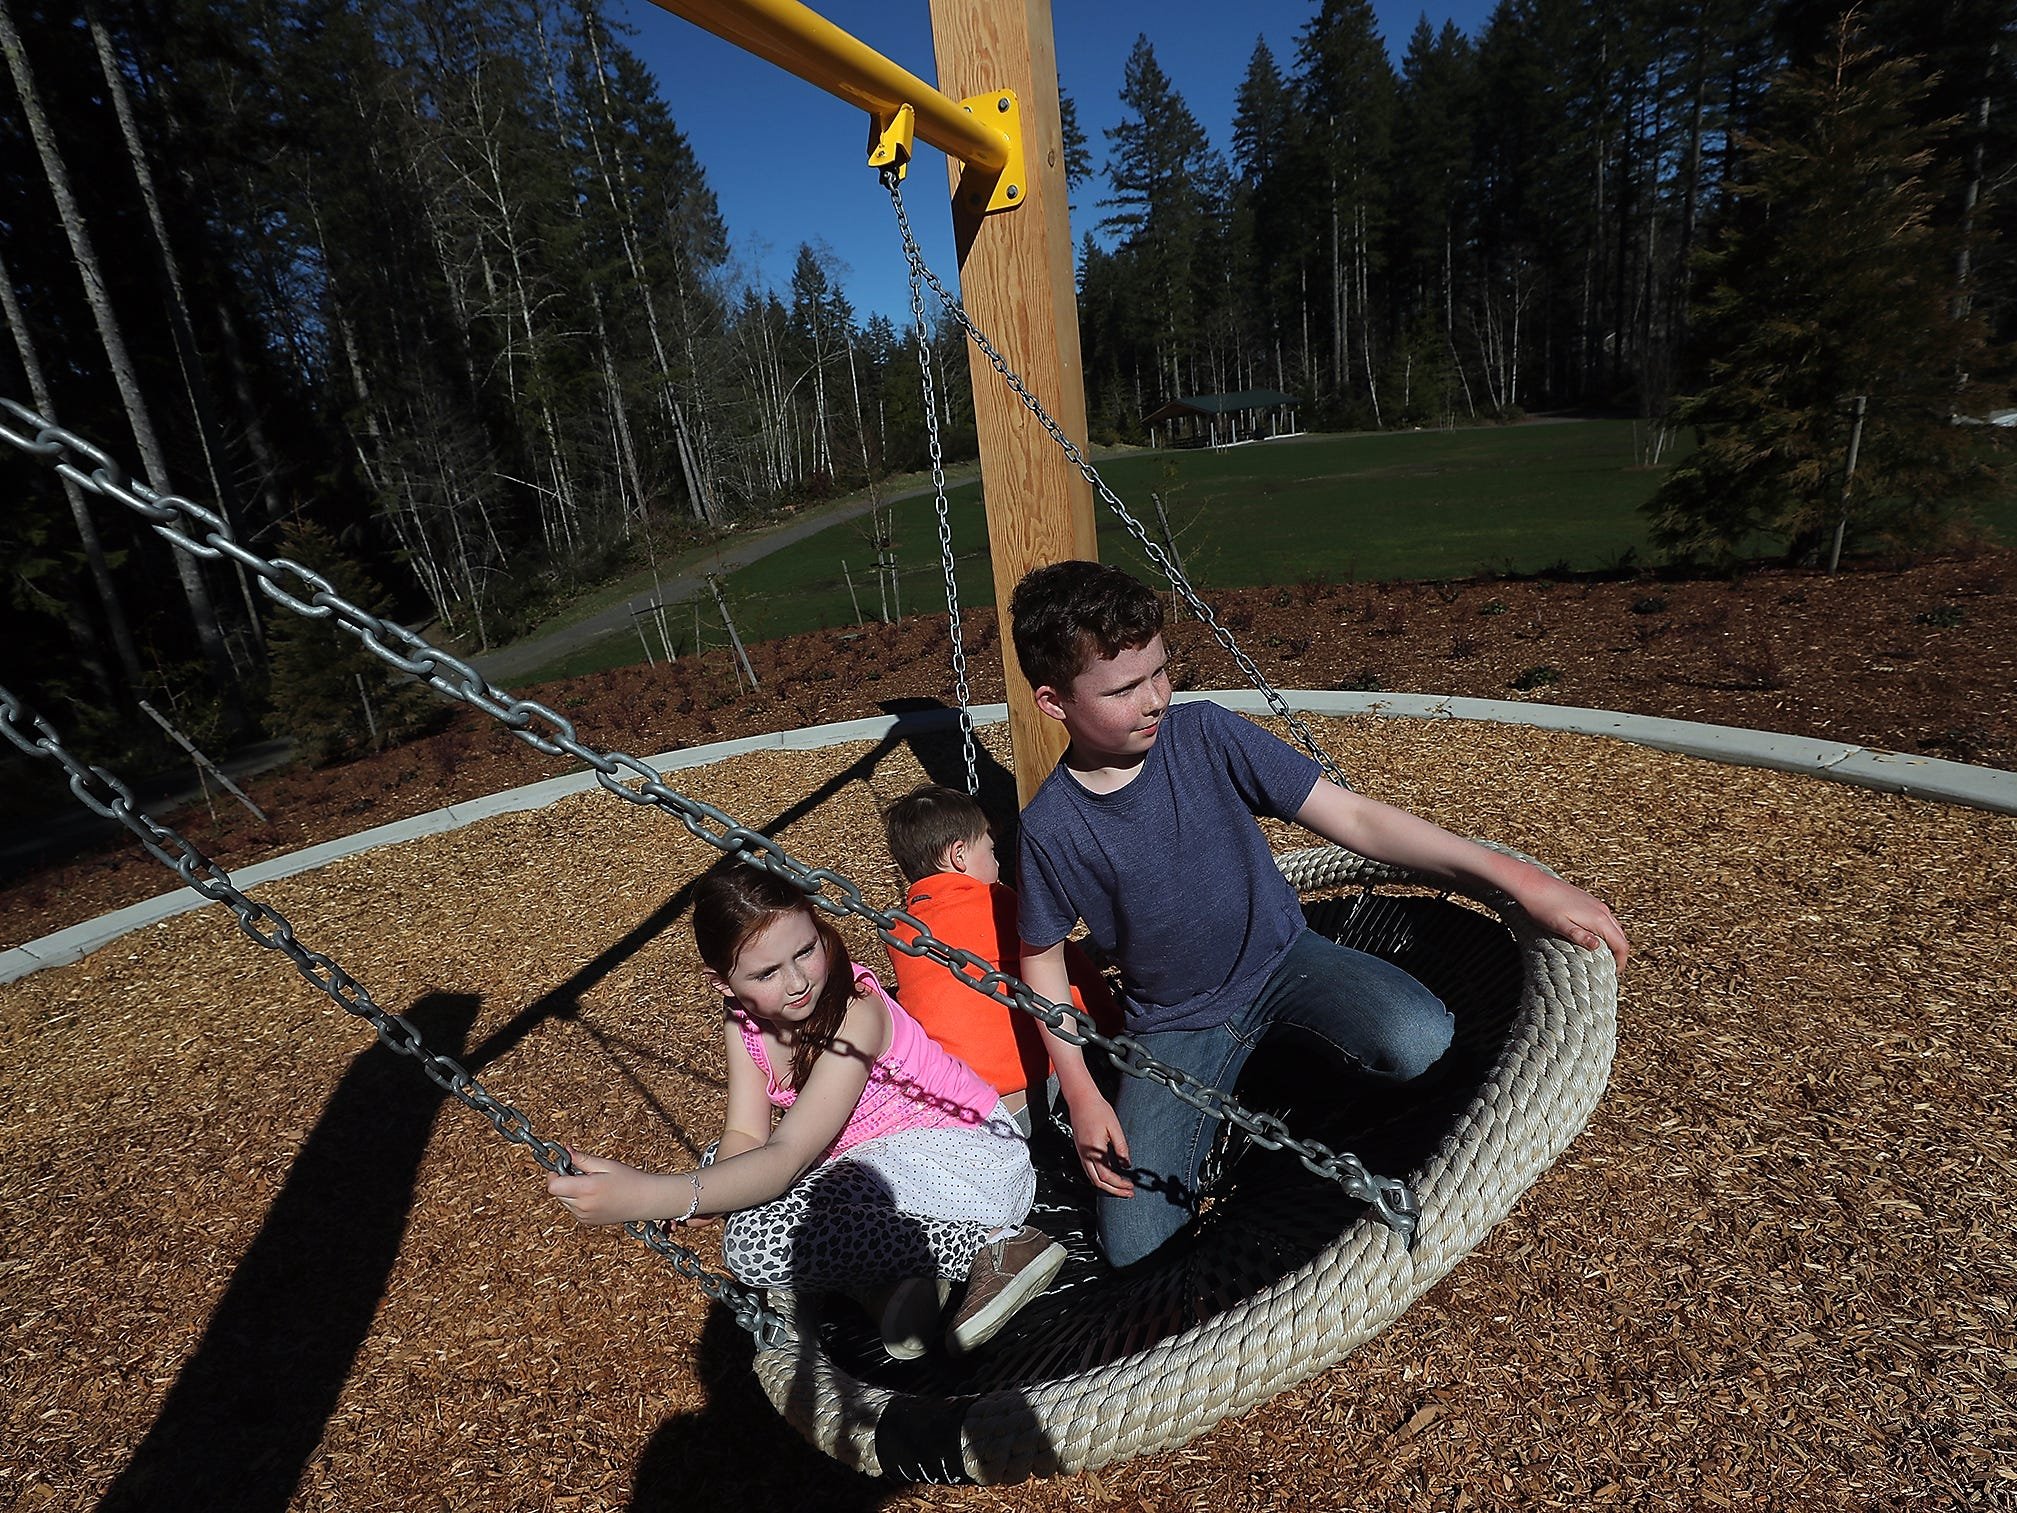 Avery Edwards , 9, and her siblings Luke, 5, and Zack, 11, ride the swing at McCormick Woods Park in Port Orchard on Monday March 18, 2019. The siblings had spent the last three days playing in the new park and Zack was hoping that they could make it back the next day as well.